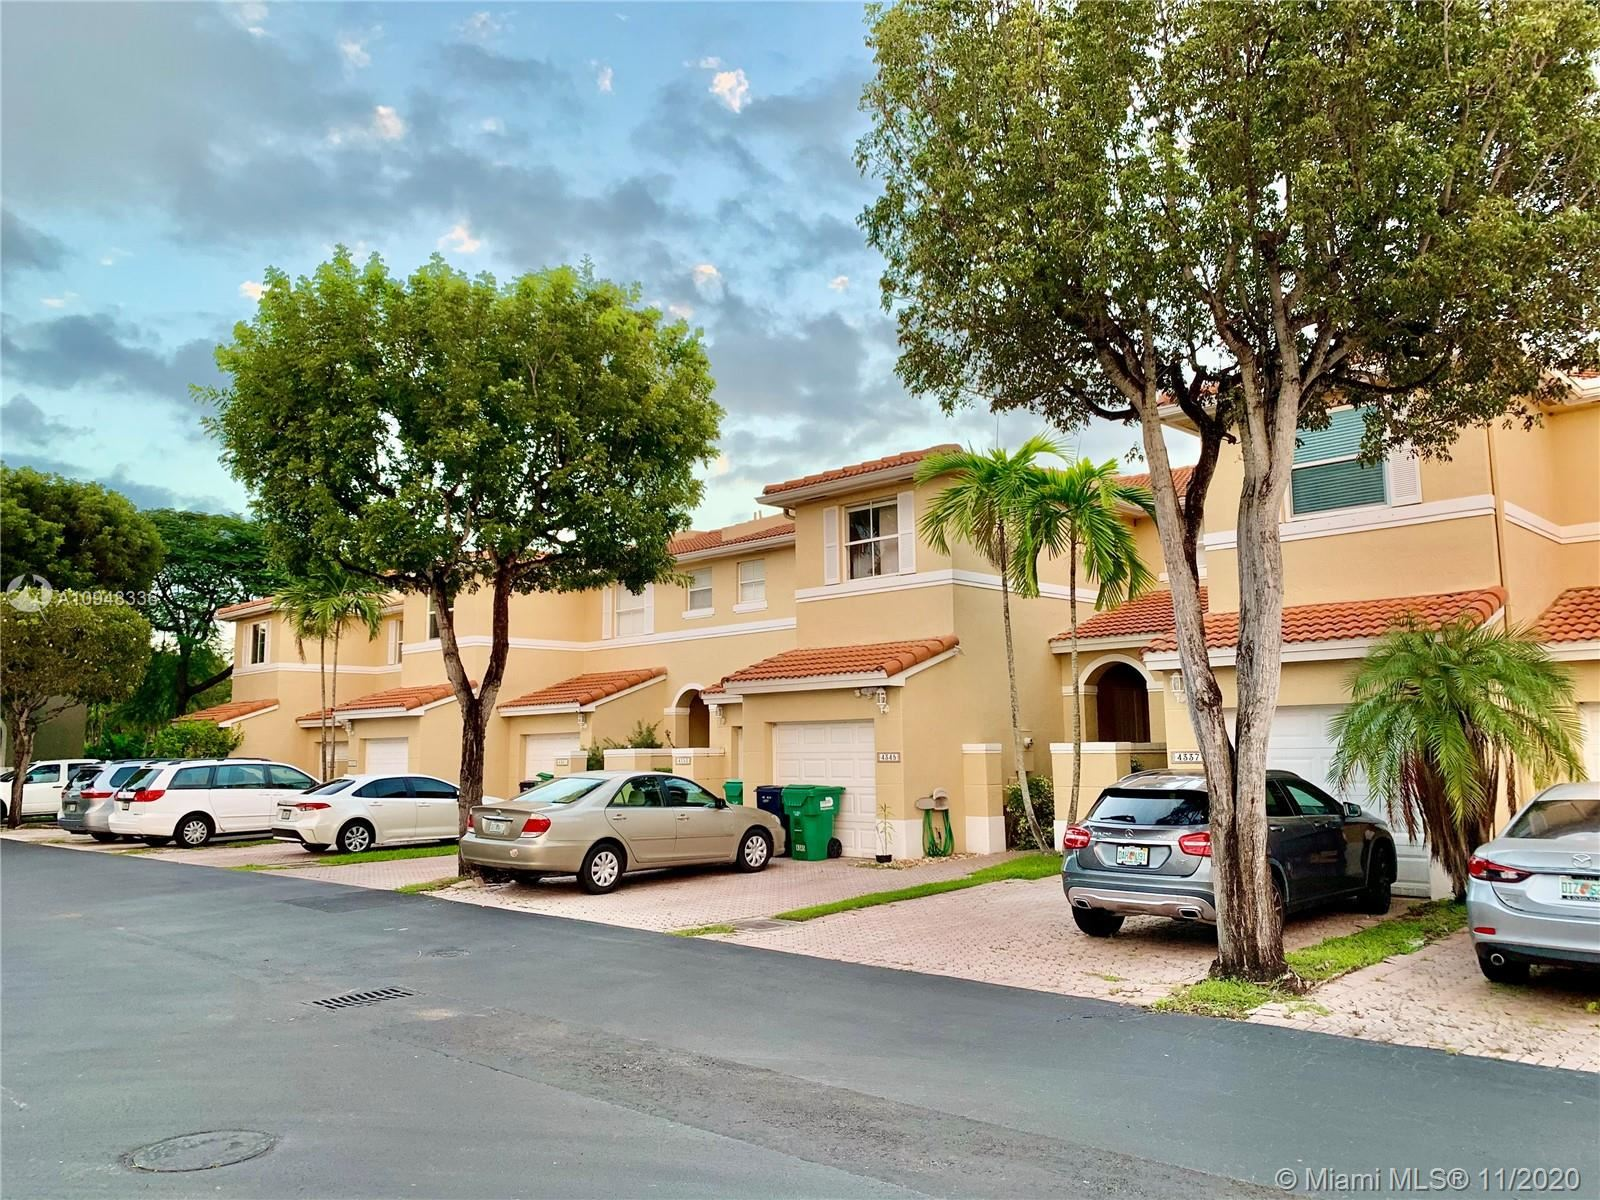 4353 NW 110th Ave #4353, Doral, FL 33178 - #: A10948336